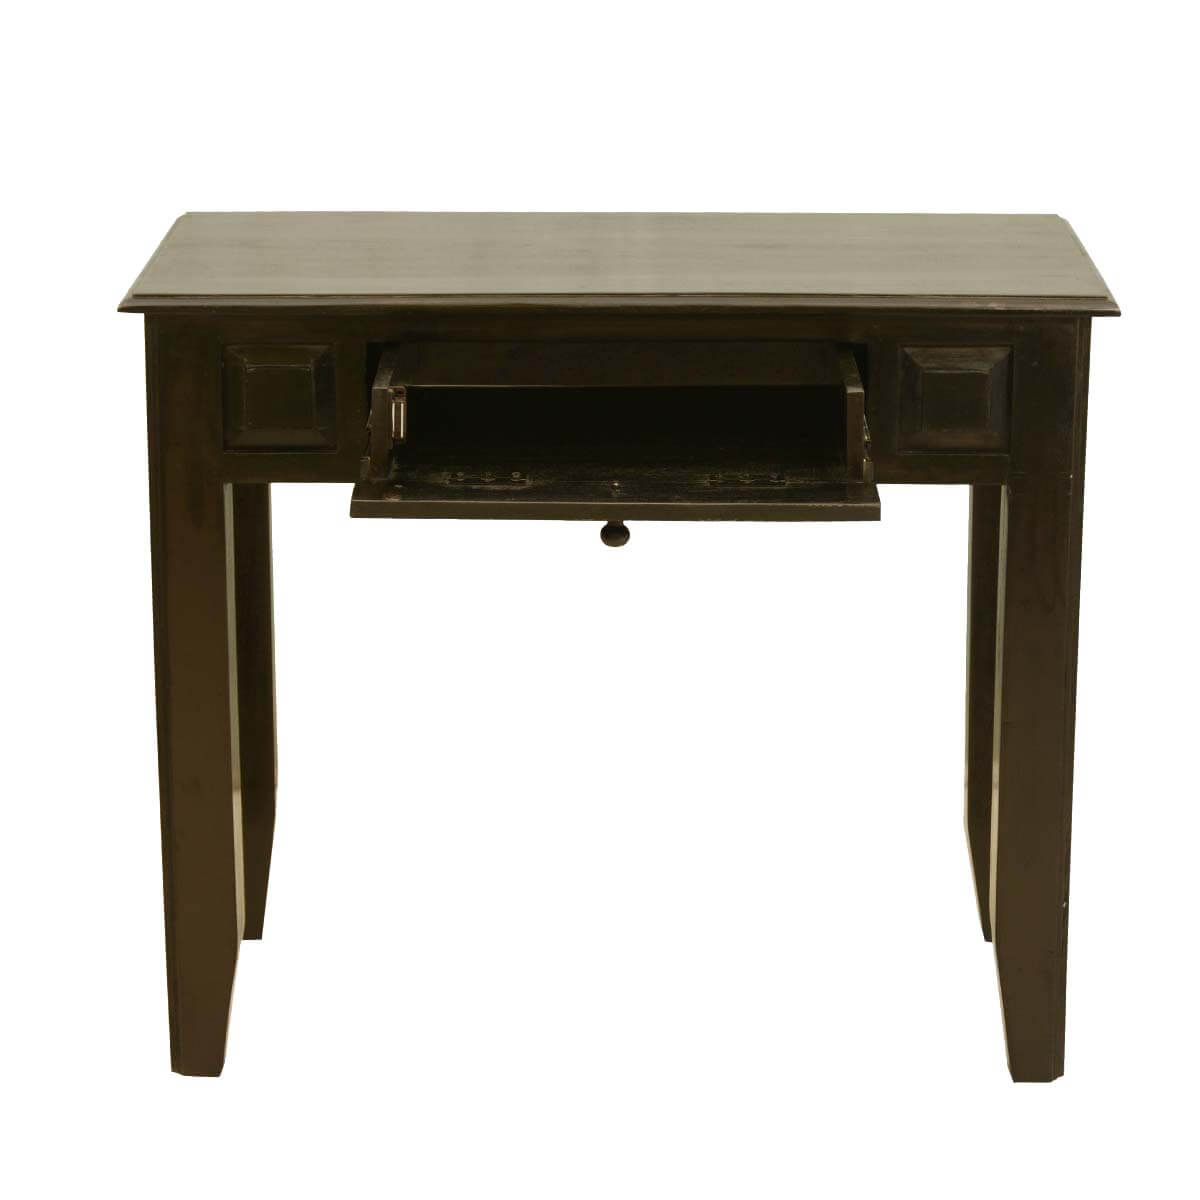 Colonial mango wood console table desk w drawer